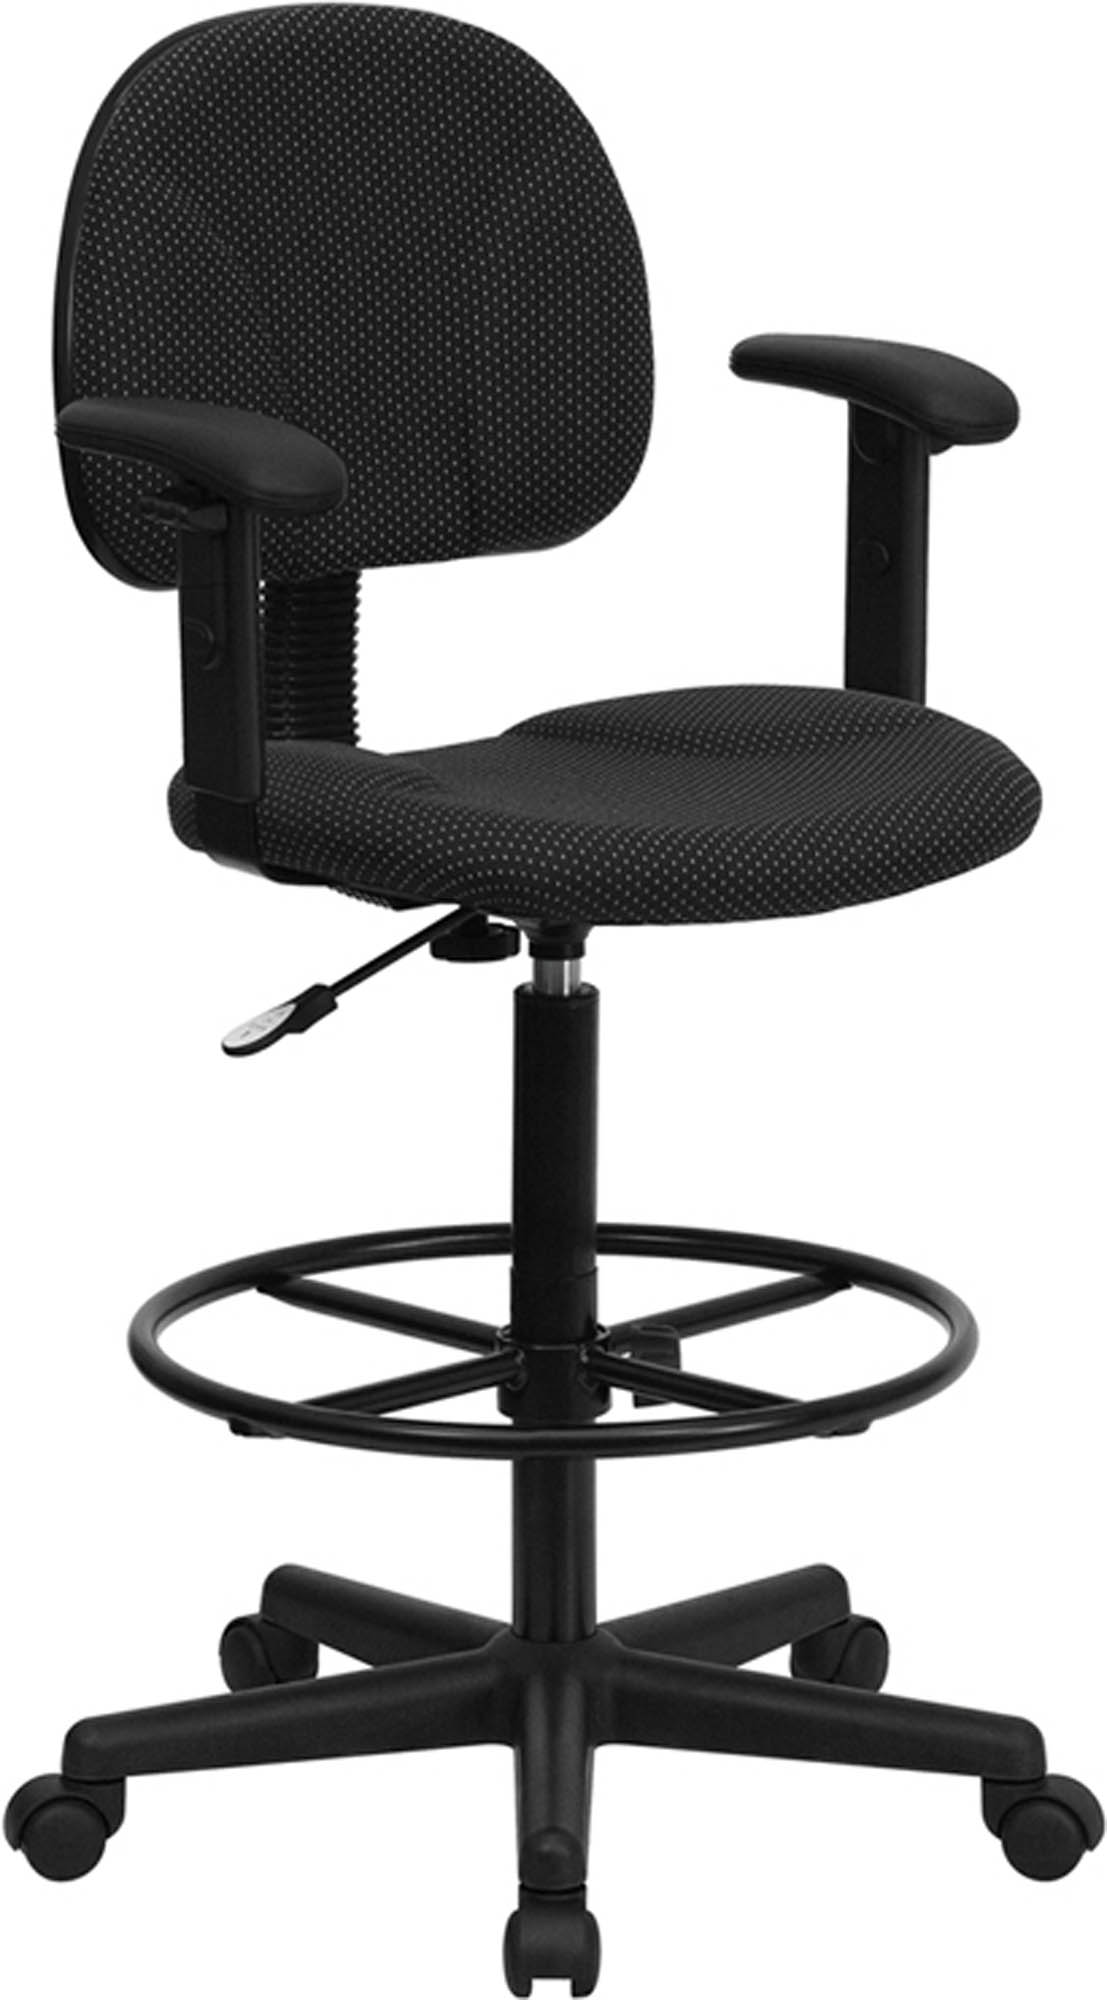 Offex Black Patterned Fabric Multi-Functional Ergonomic Drafting Stool with Arms (Adjustable Range 26'-30.5'H or 22.5'-27'H)